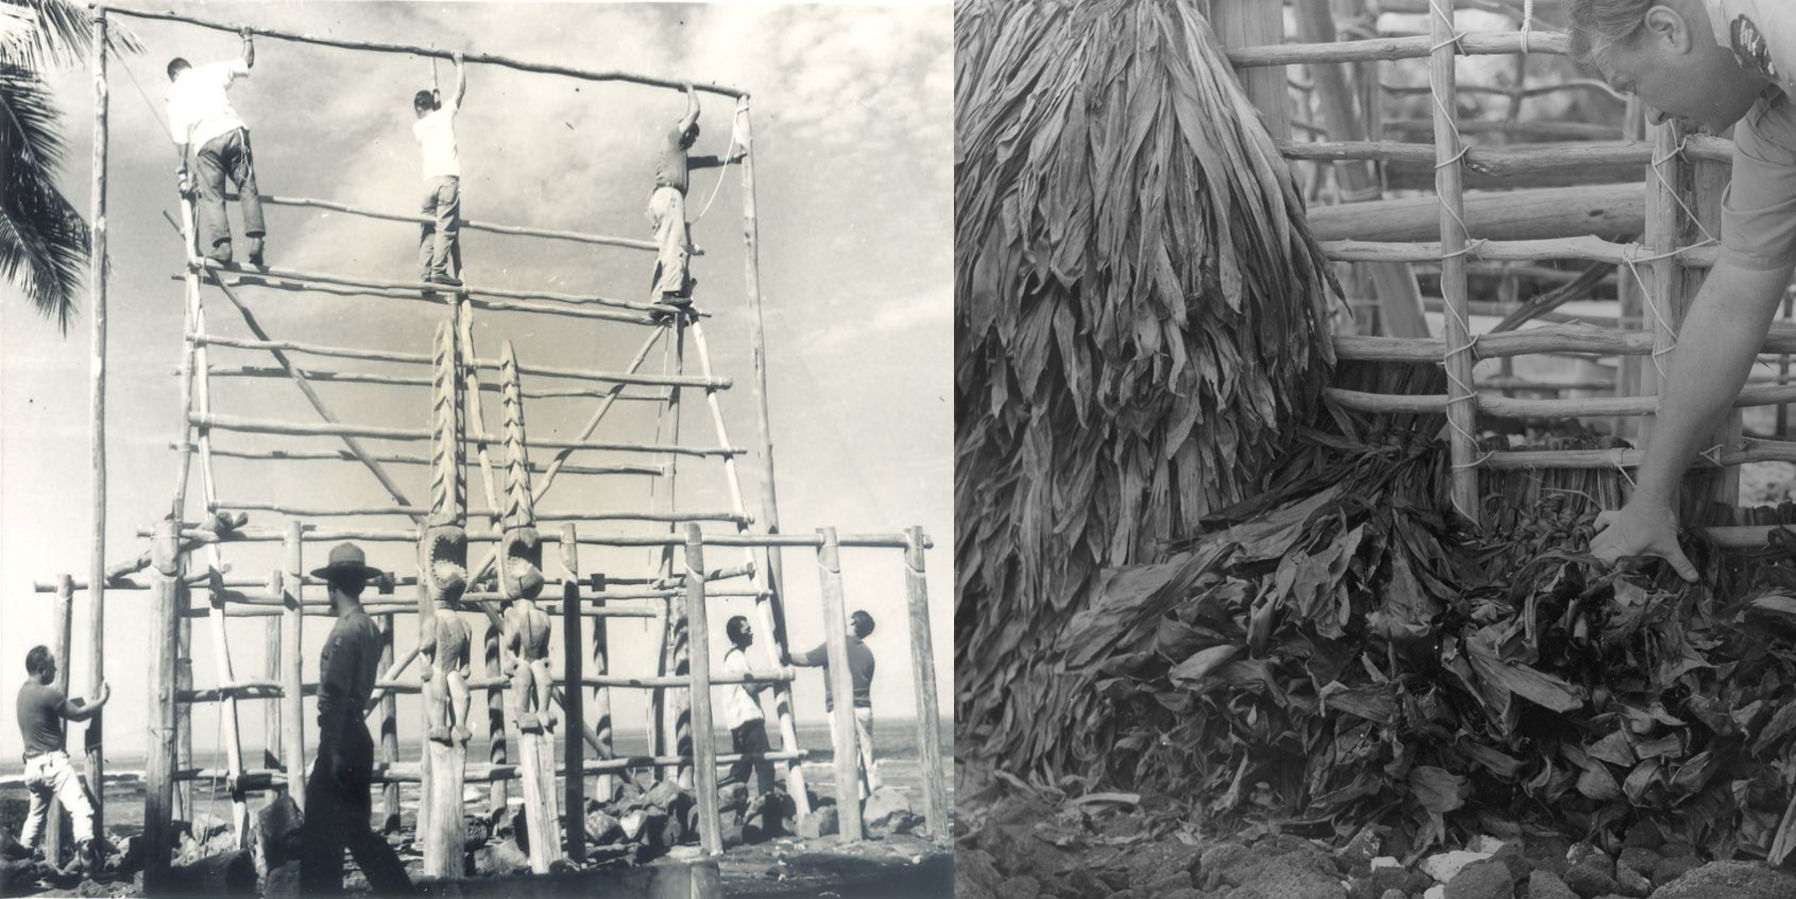 Two photos: 1) Workers lash frame of Hale o Keawe 2) Worker uses ti leaves to thatch the walls of Hale o Keawe